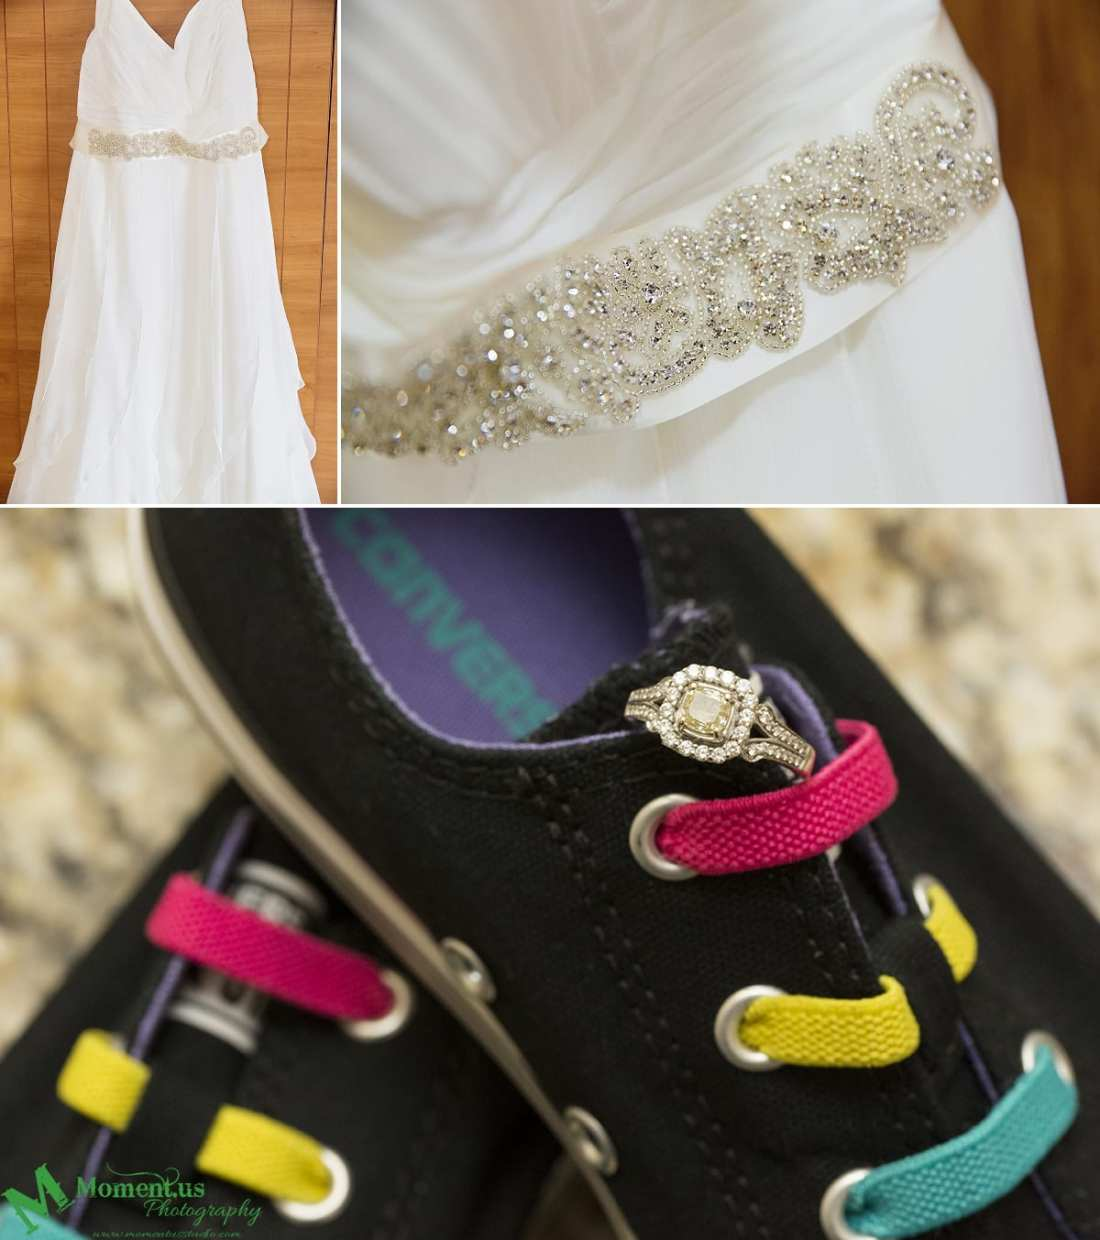 Alexandria wedding - ring on Converse